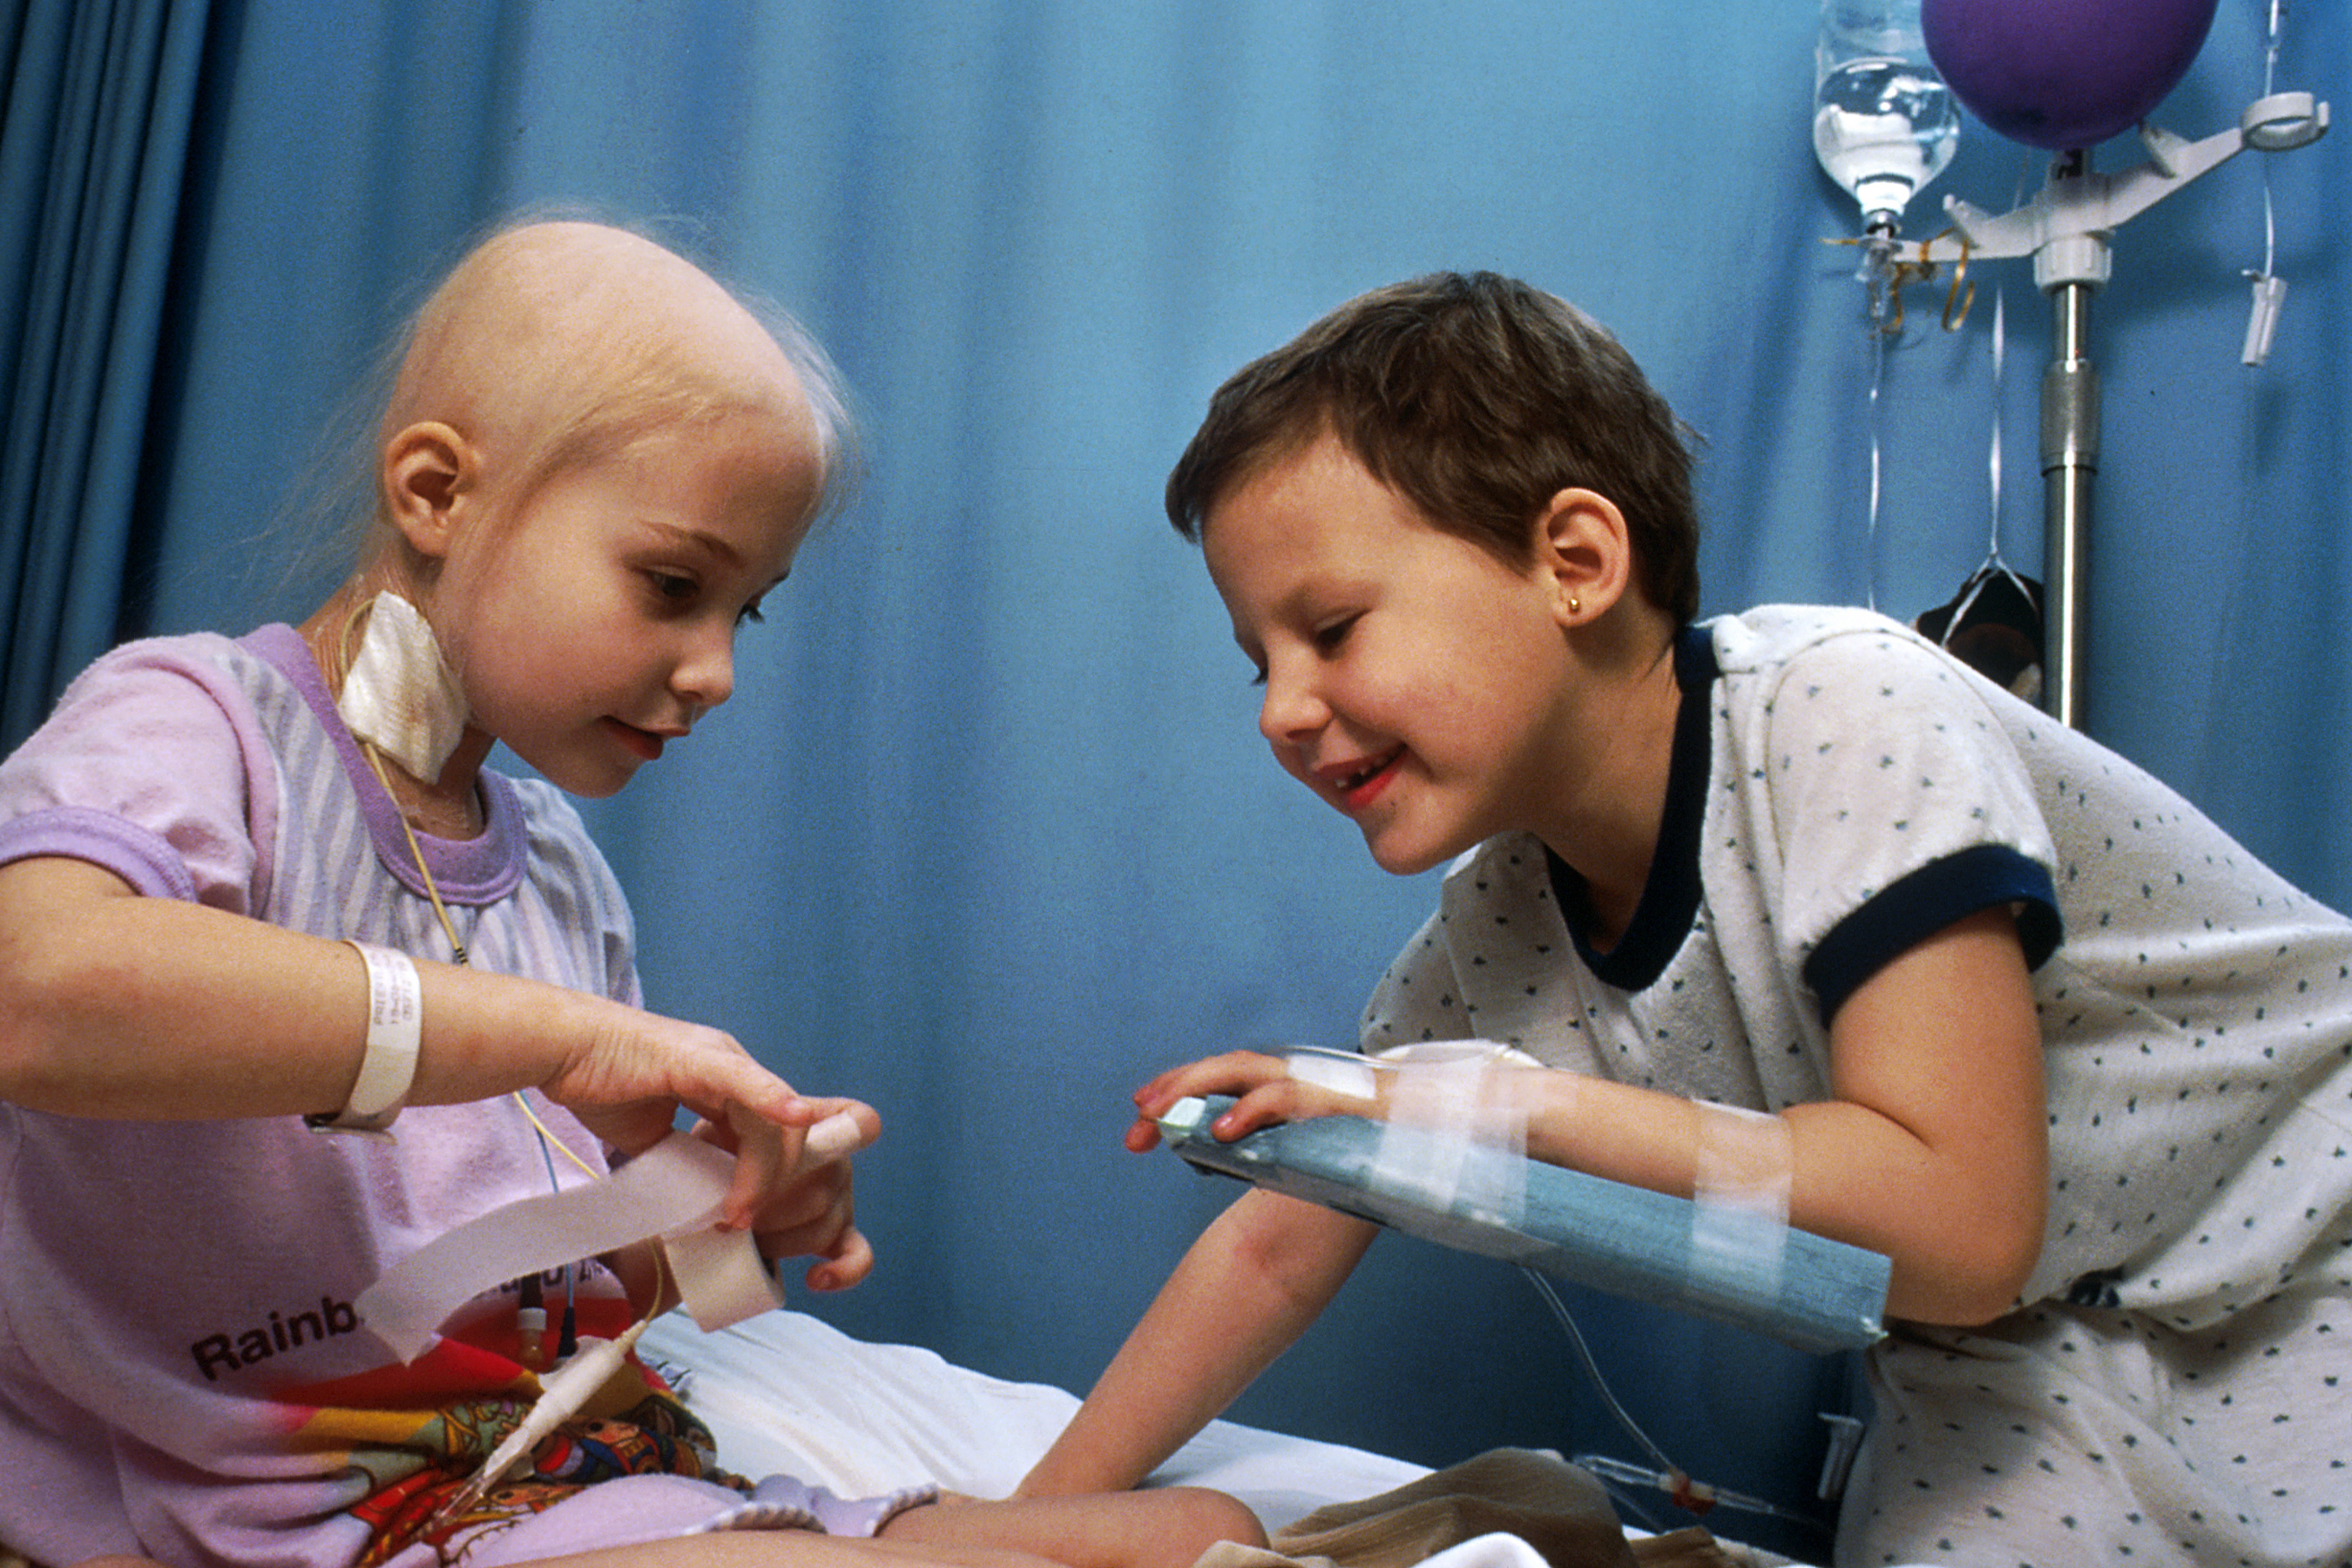 Two acute lymphocytic leukemia patients who are receiving chemotherapy; they are demonstrating some of the procedures used with chemotherapy